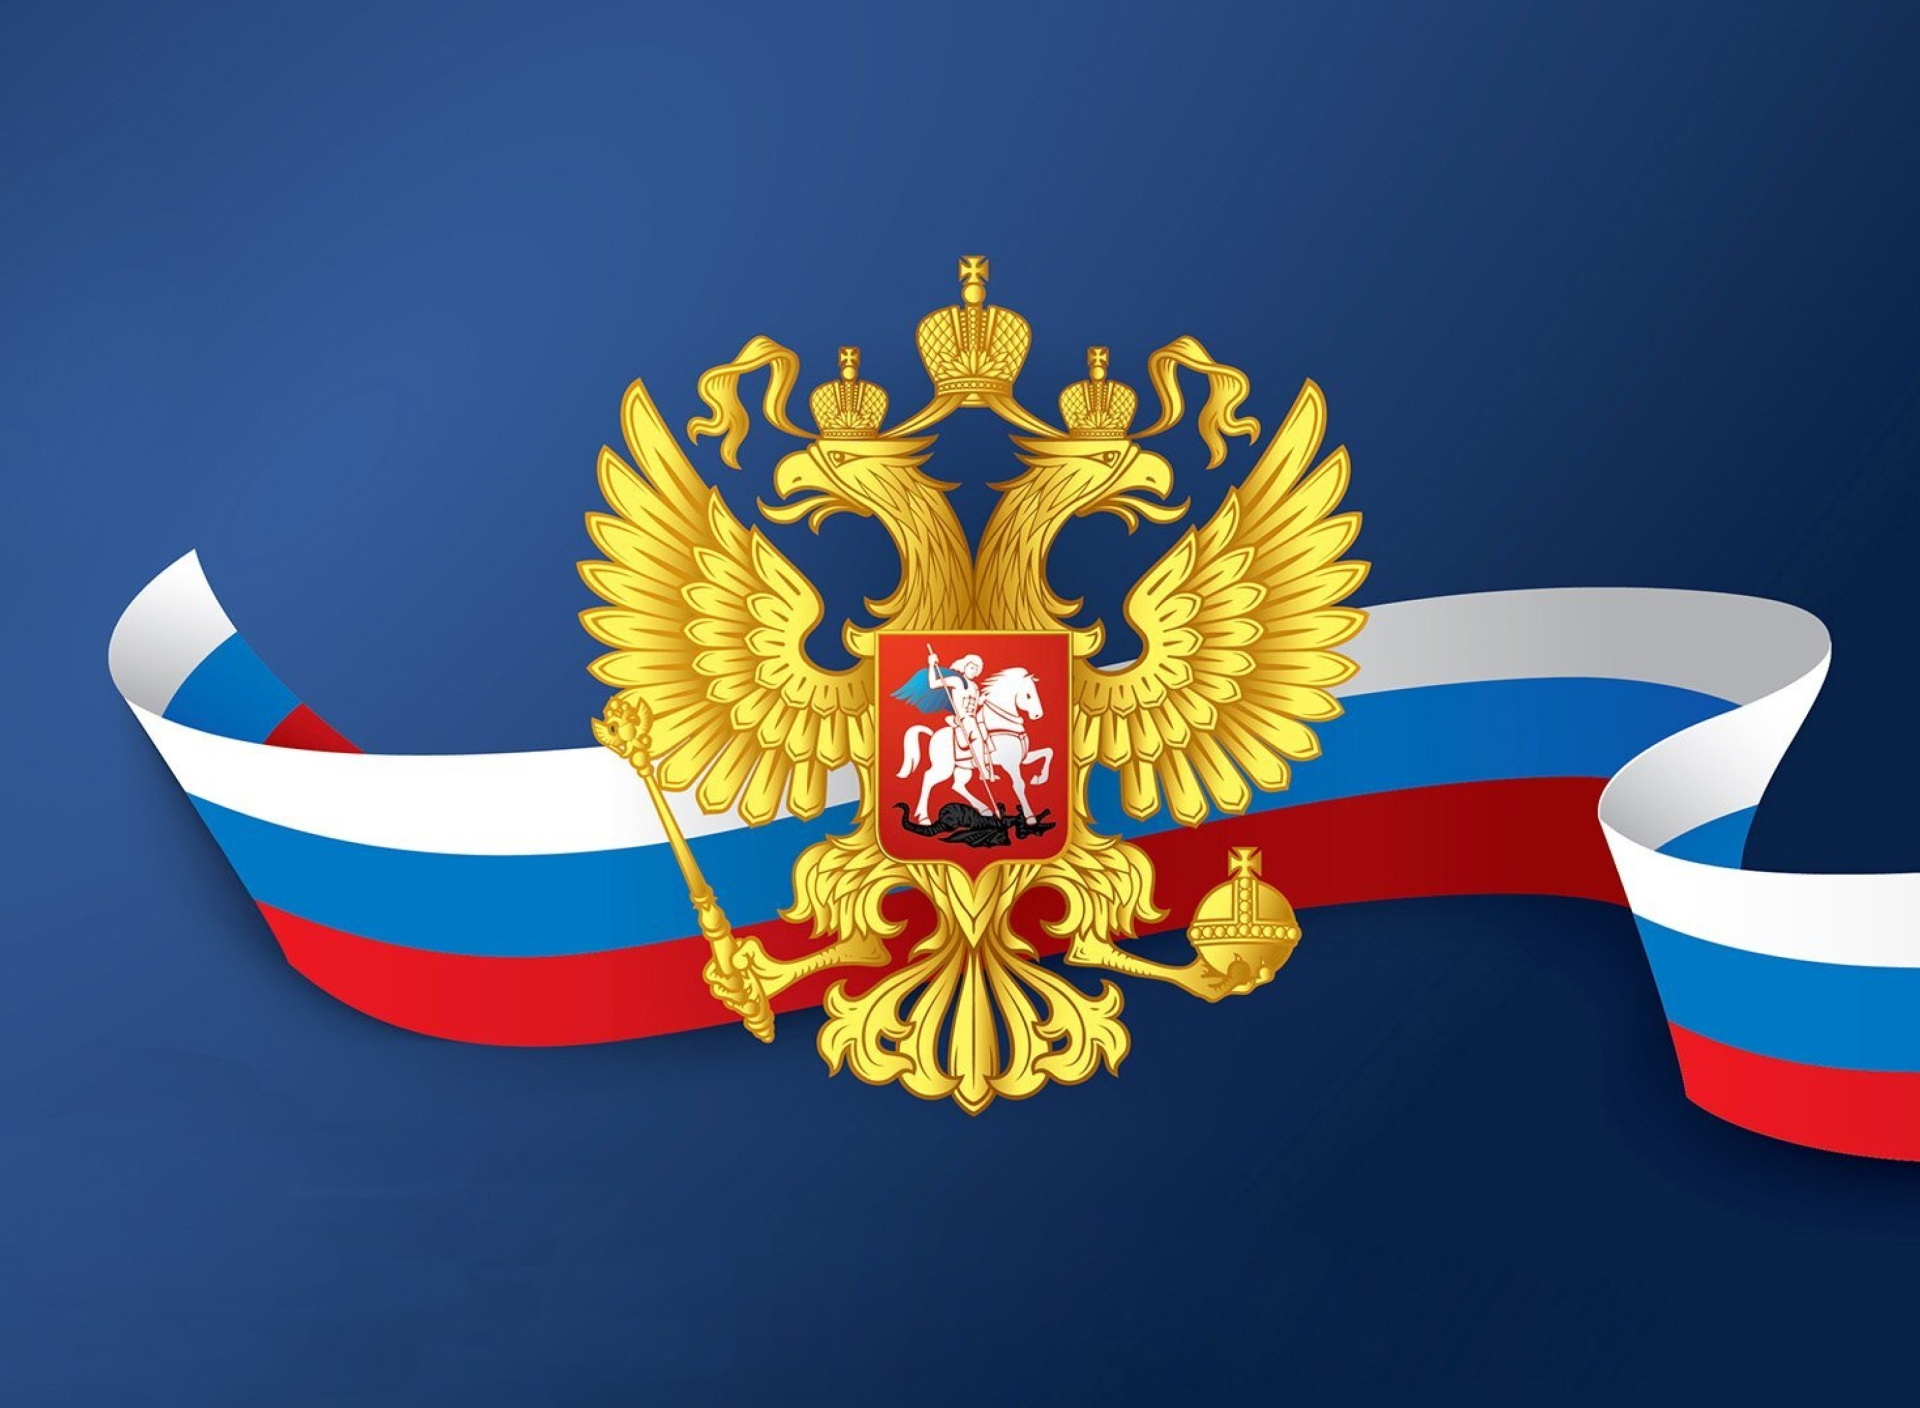 Russian coat of arms and flag wallpaper 1920x1408